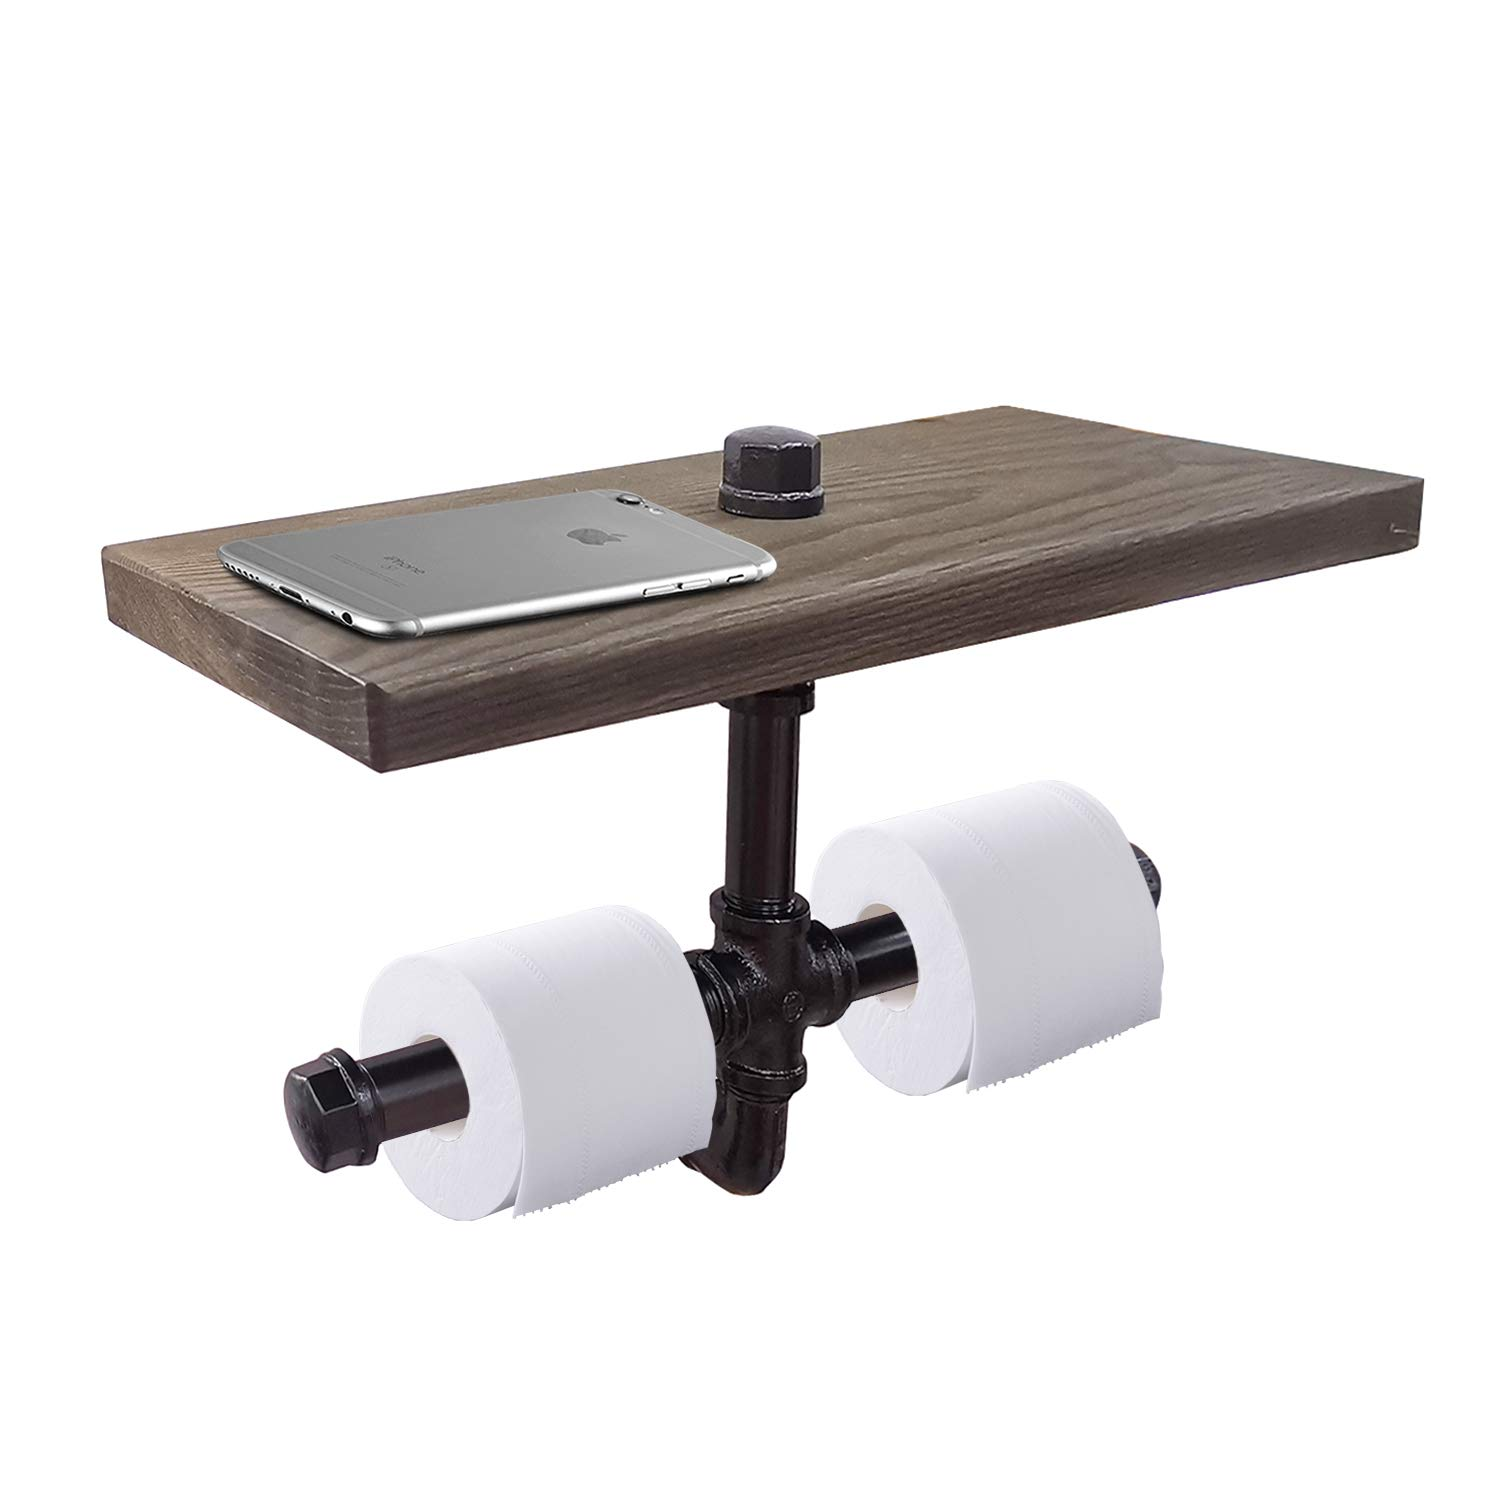 gotonovo Industrial Toilet Paper Holder Double Rolls with Wooden Shelf Pipe Bathroom Hardware Long Shelf Cast Iron Pipe Washroom Wall Mounted Kit